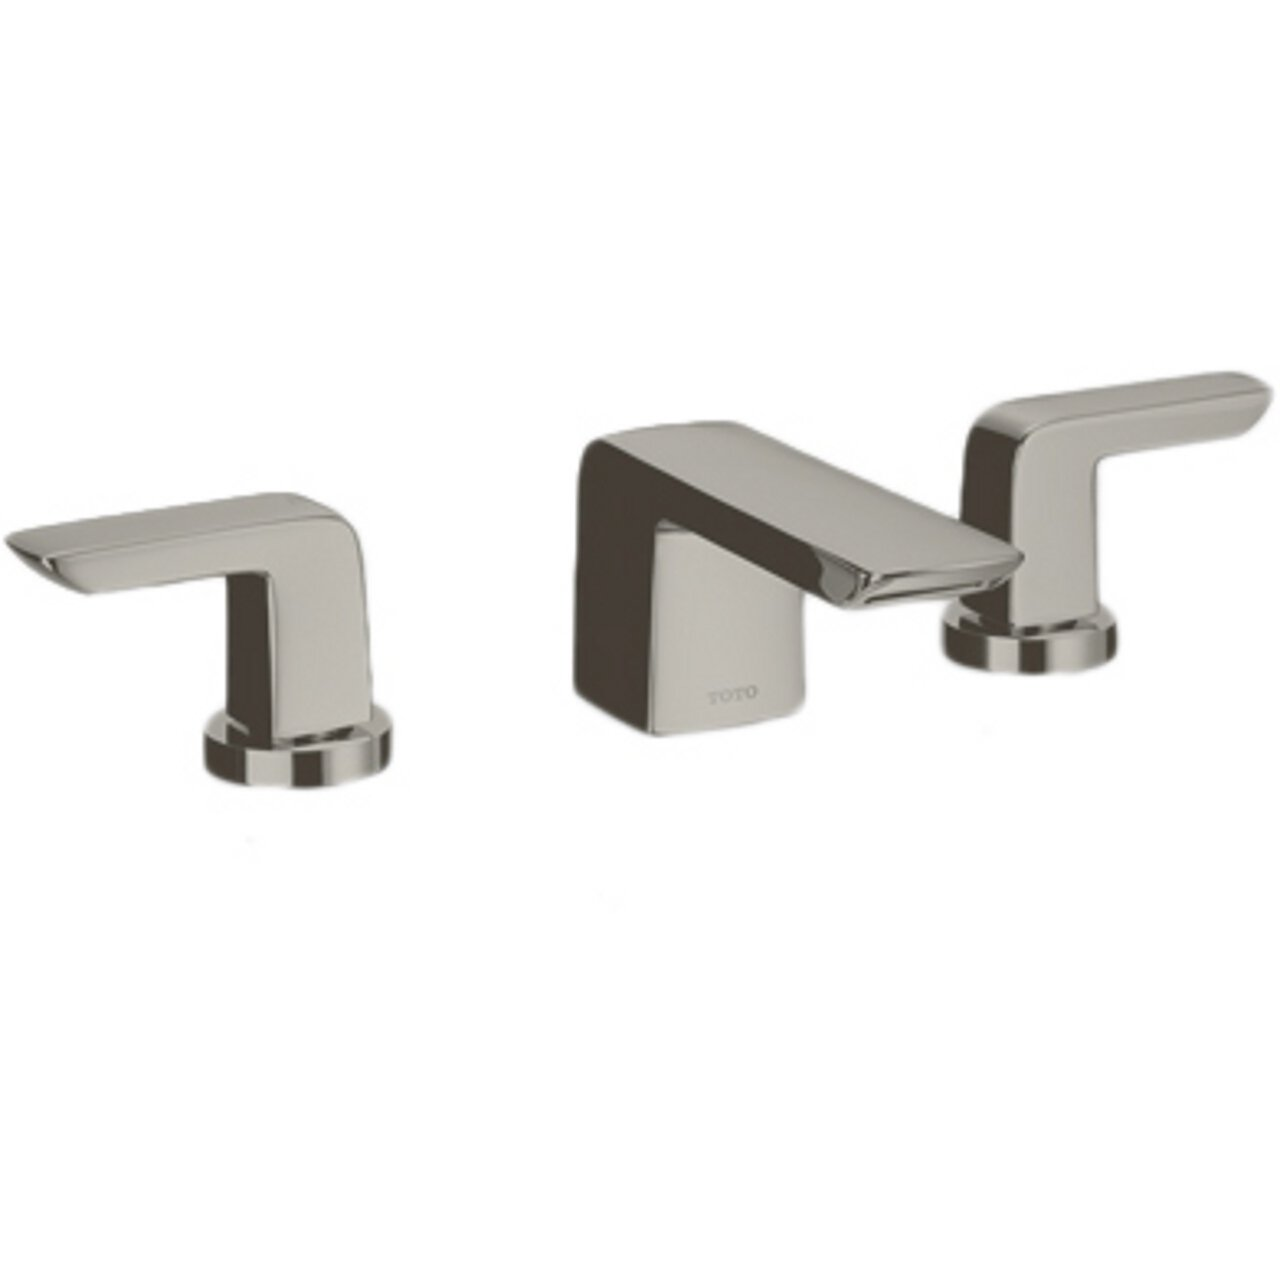 Toto TL960DDLQ#BN 1.5 GPM Soirée Widespread Lavatory Faucet, Brushed ...